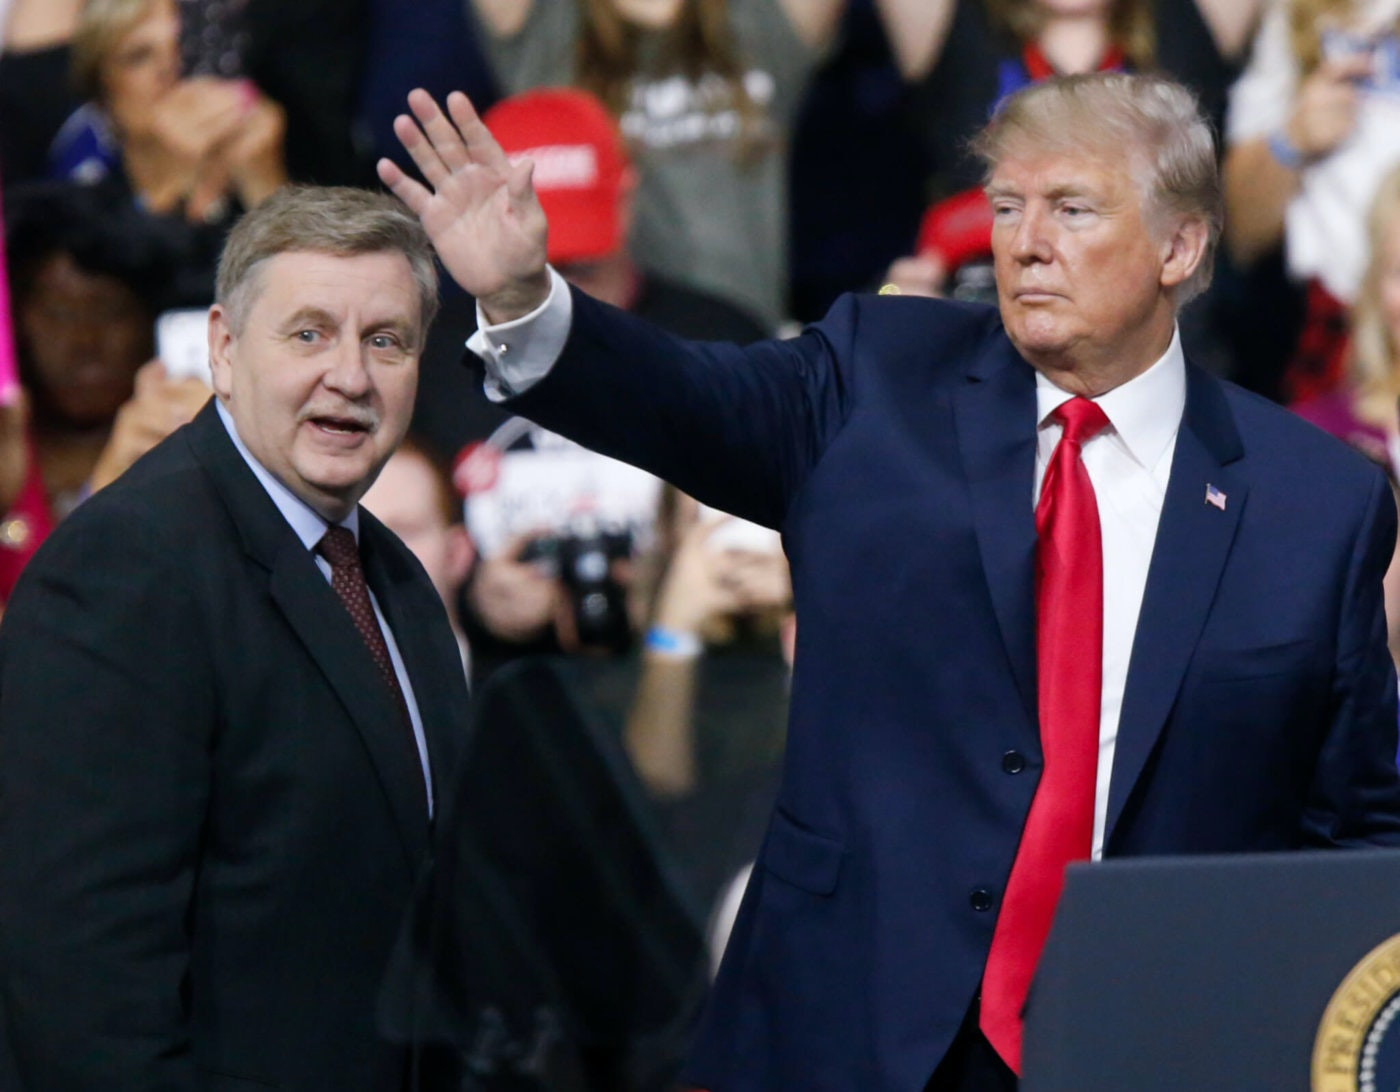 Former President Donald Trump acknowledges the crowd during a campaign rally with Republican Rick Saccone, in March 2018 in Allegheny County. (AP Photo/Keith Srakocic)